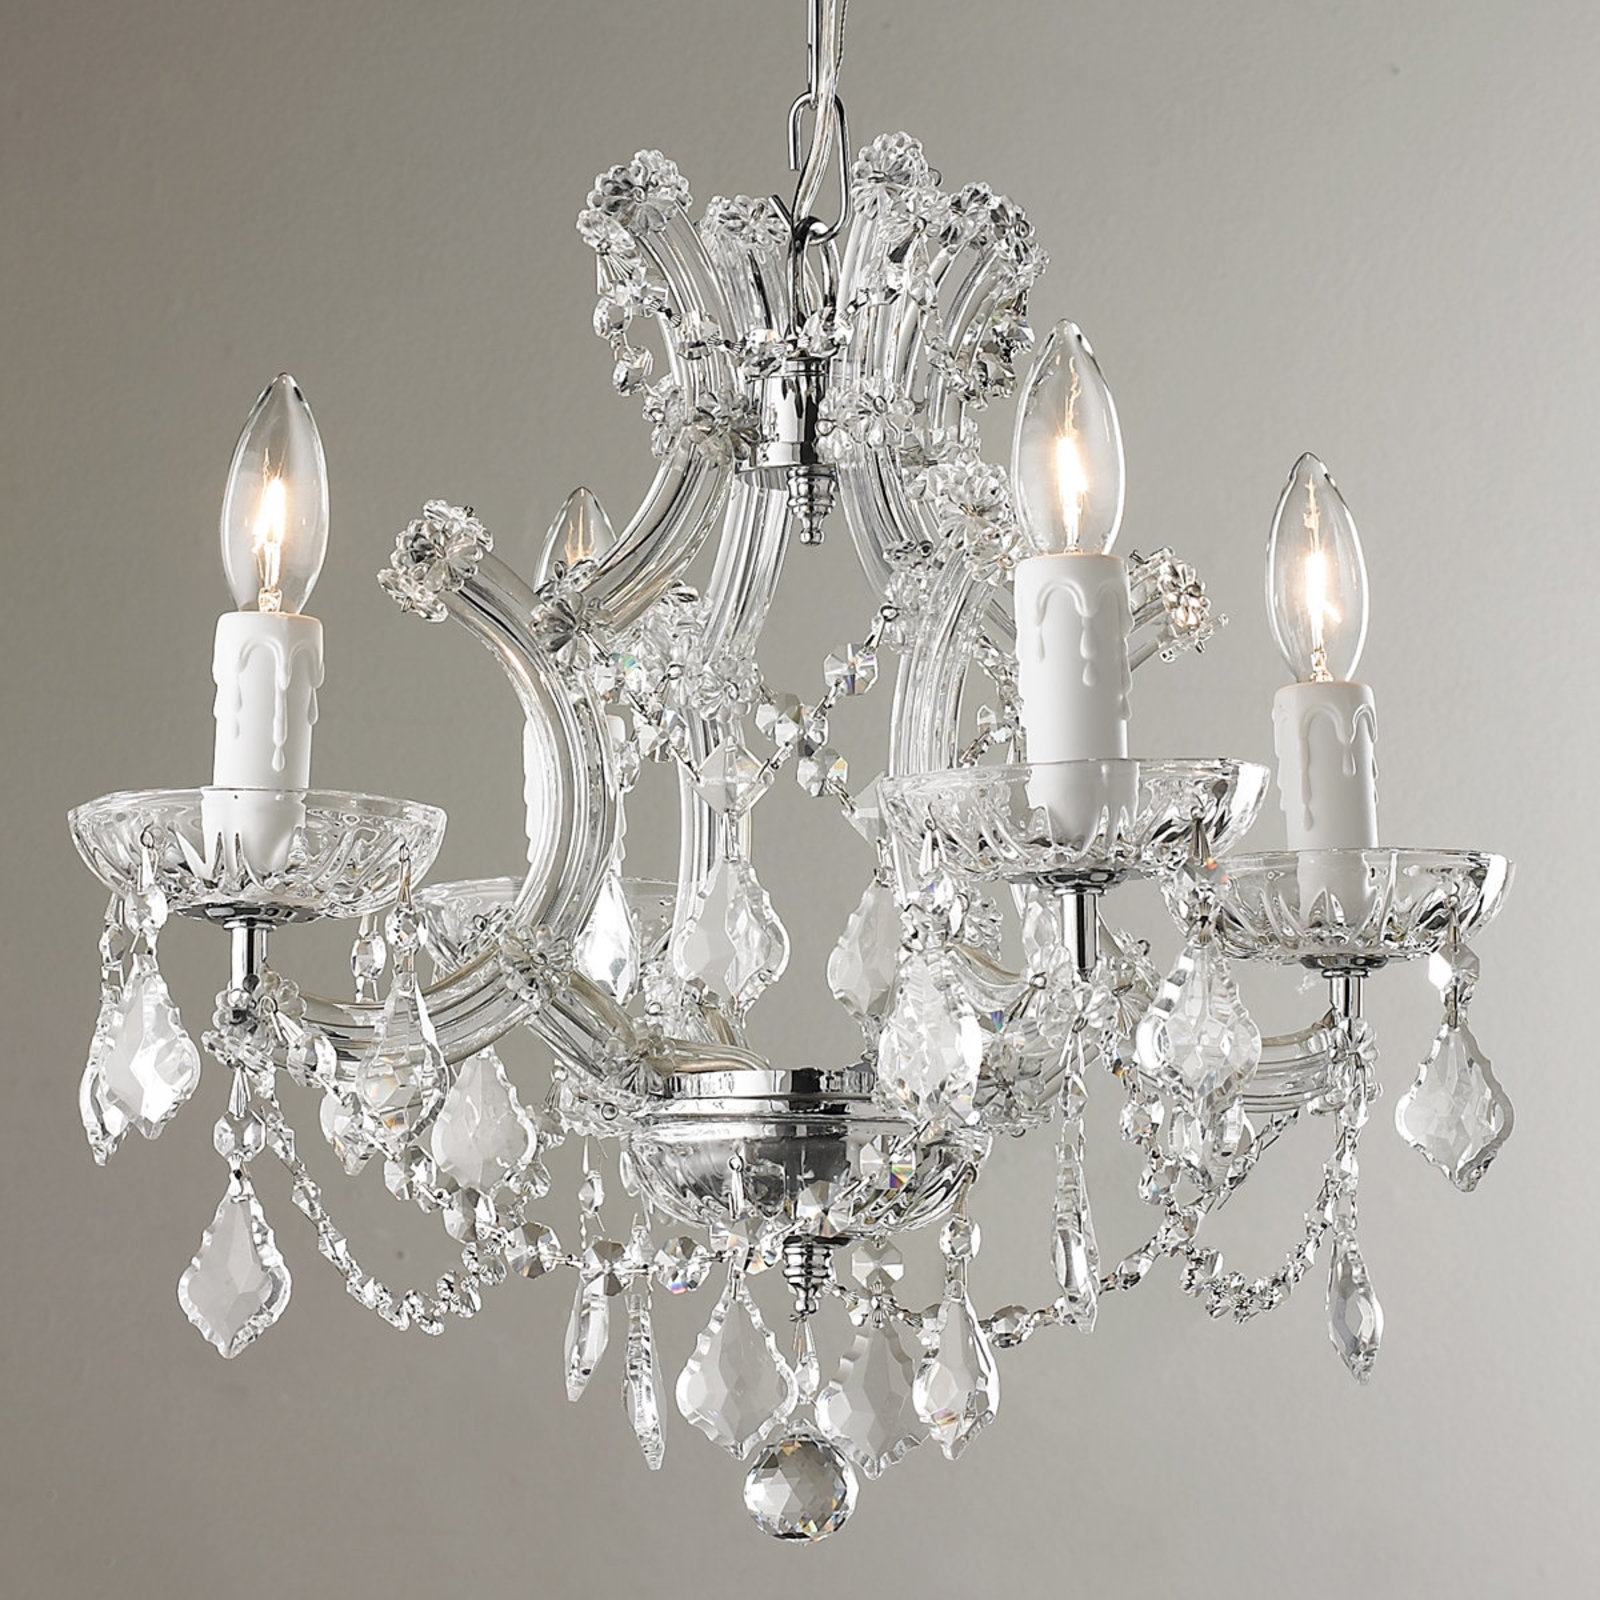 Home Designs With Small Chandeliers – Goodworksfurniture With Regard To Famous Small Chandeliers (View 20 of 20)